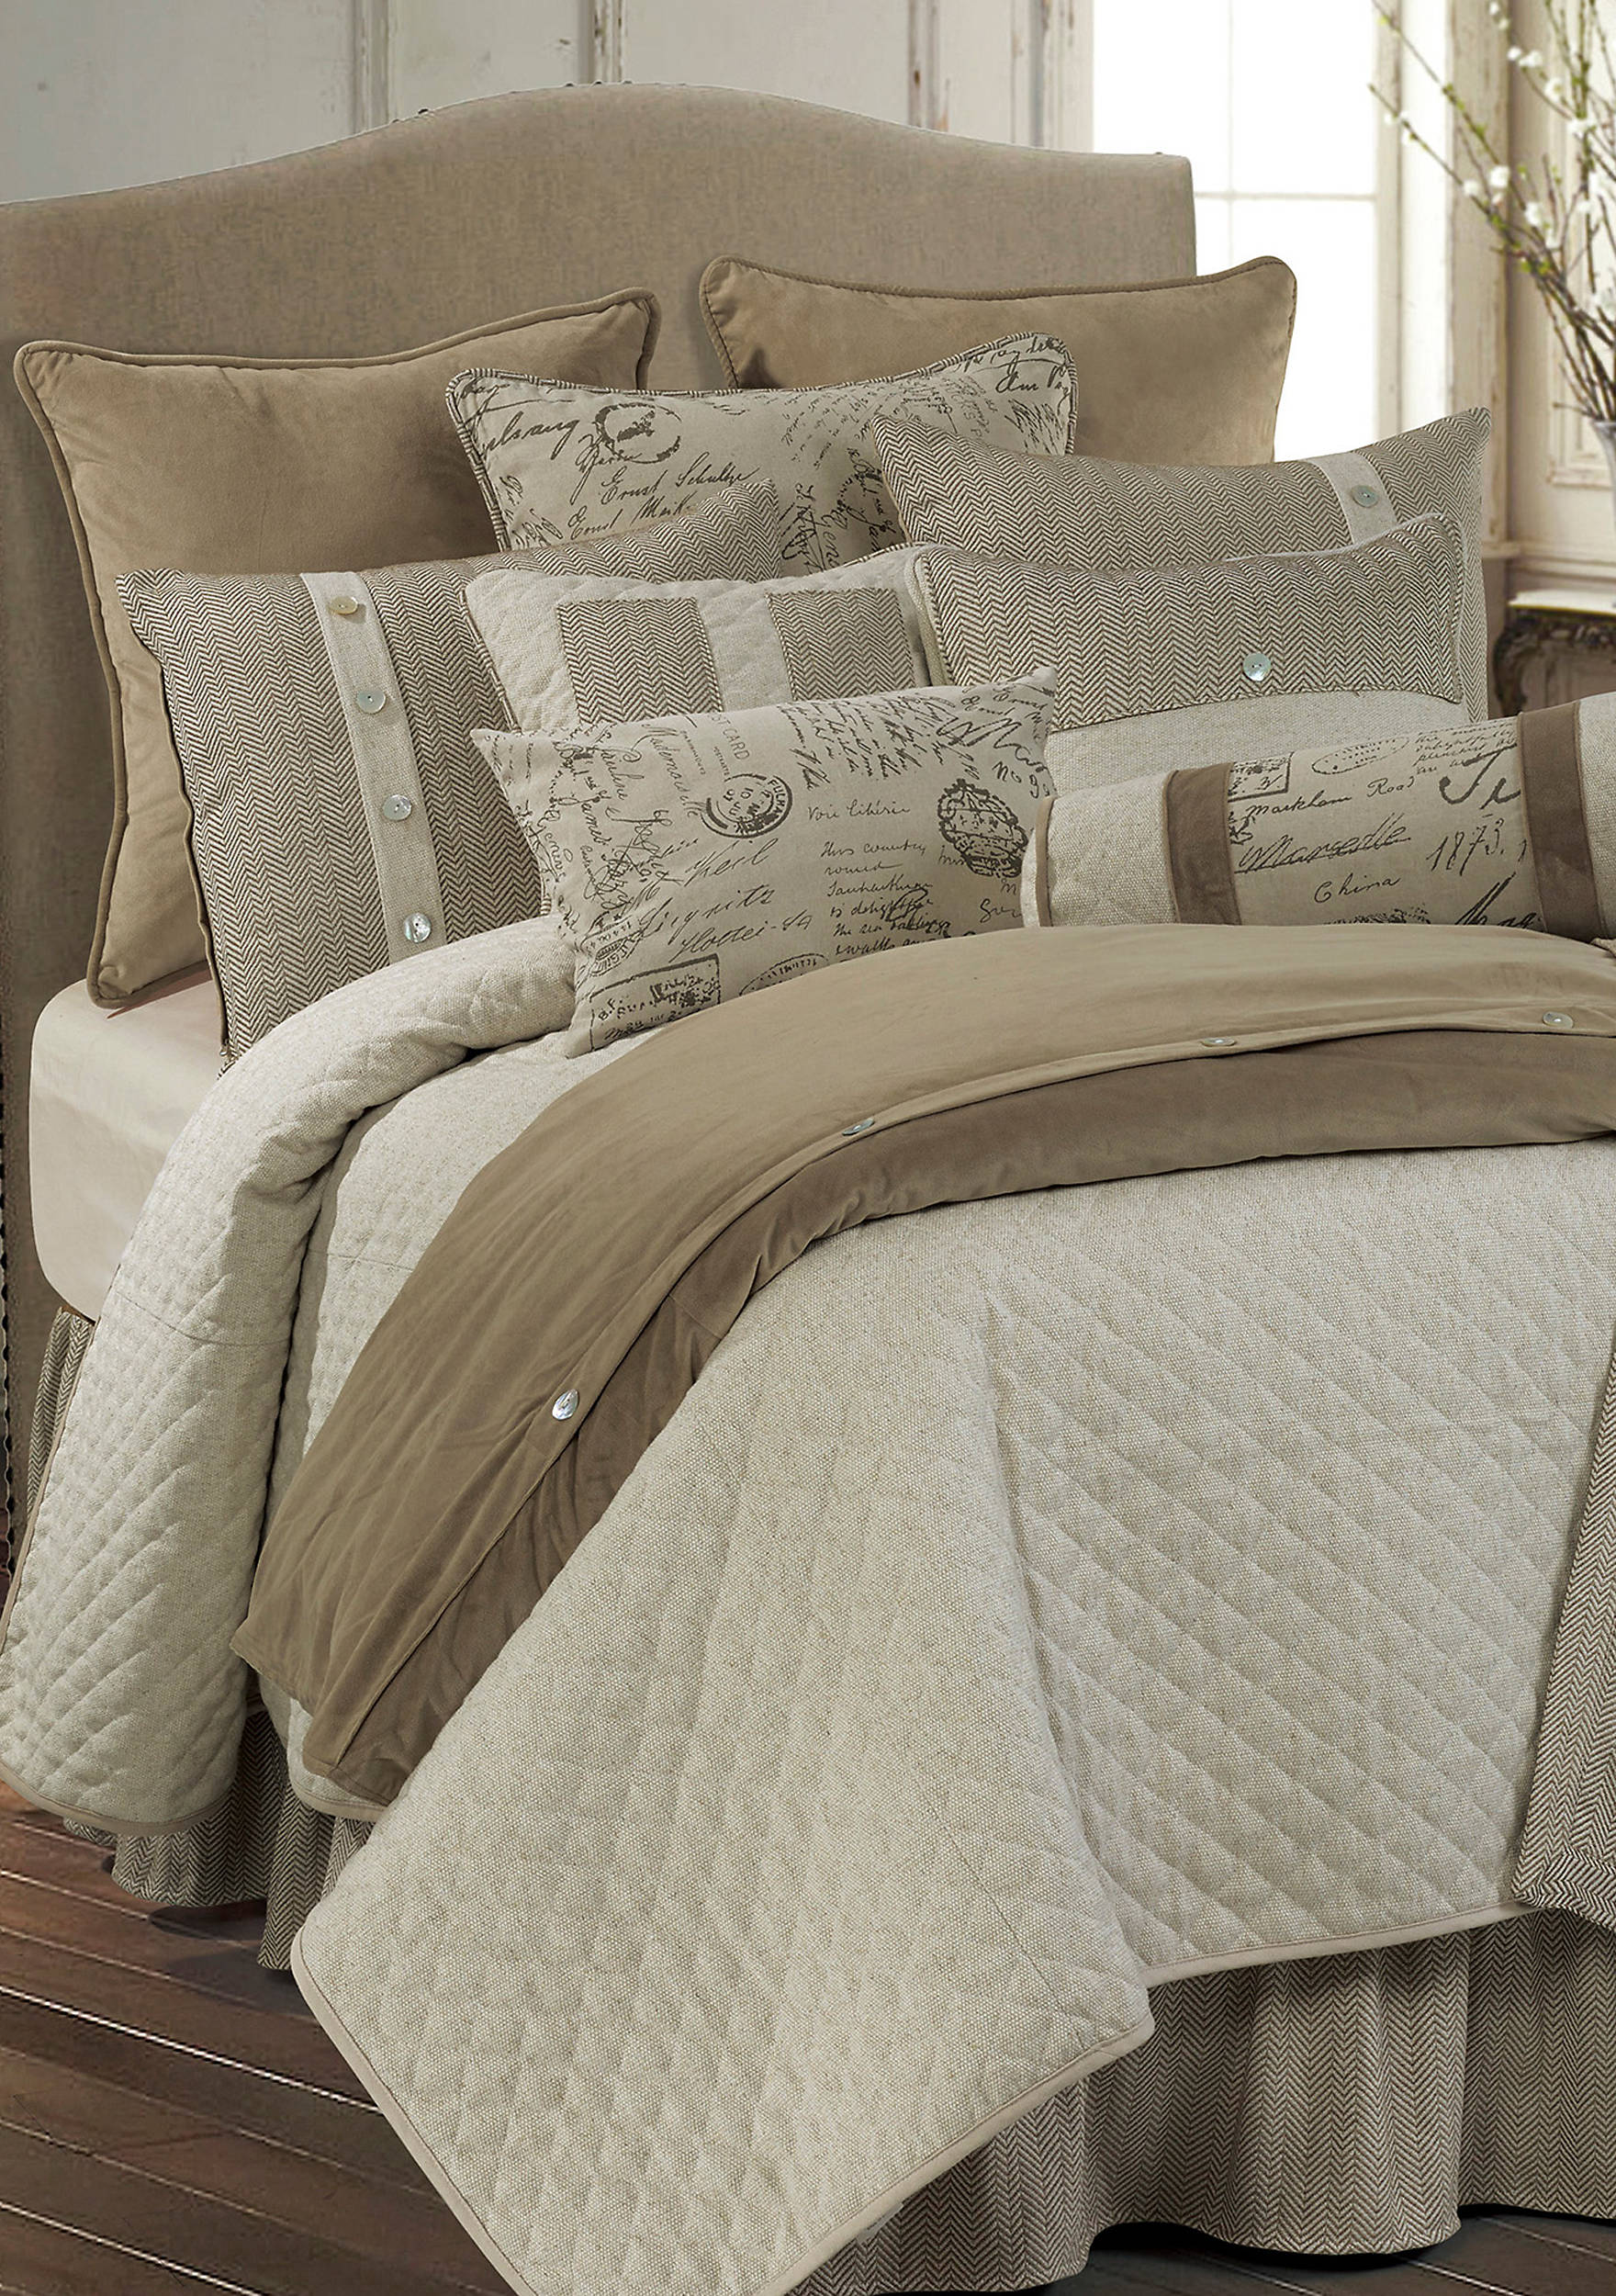 Fairfield Bedding Collection. Bedding Collections   Bedding Sets   belk